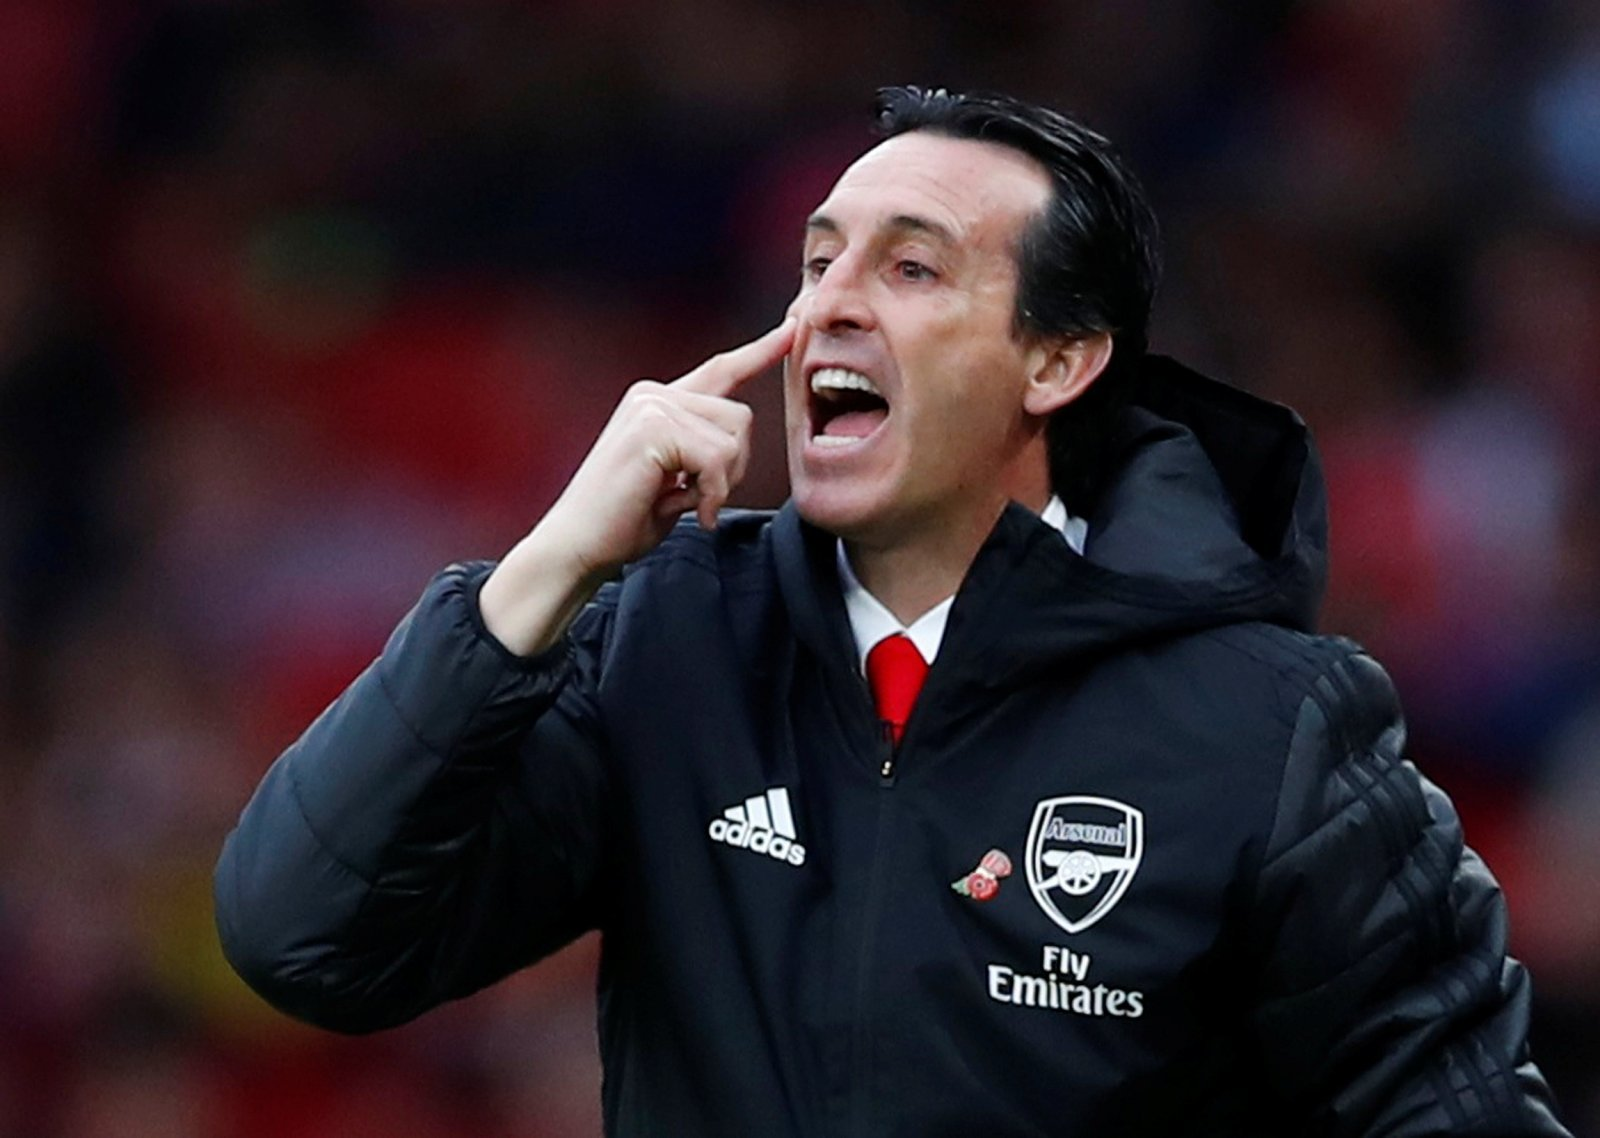 Arsenal: Some fans think Leicester defeat is final straw for 'clueless' Unai Emery